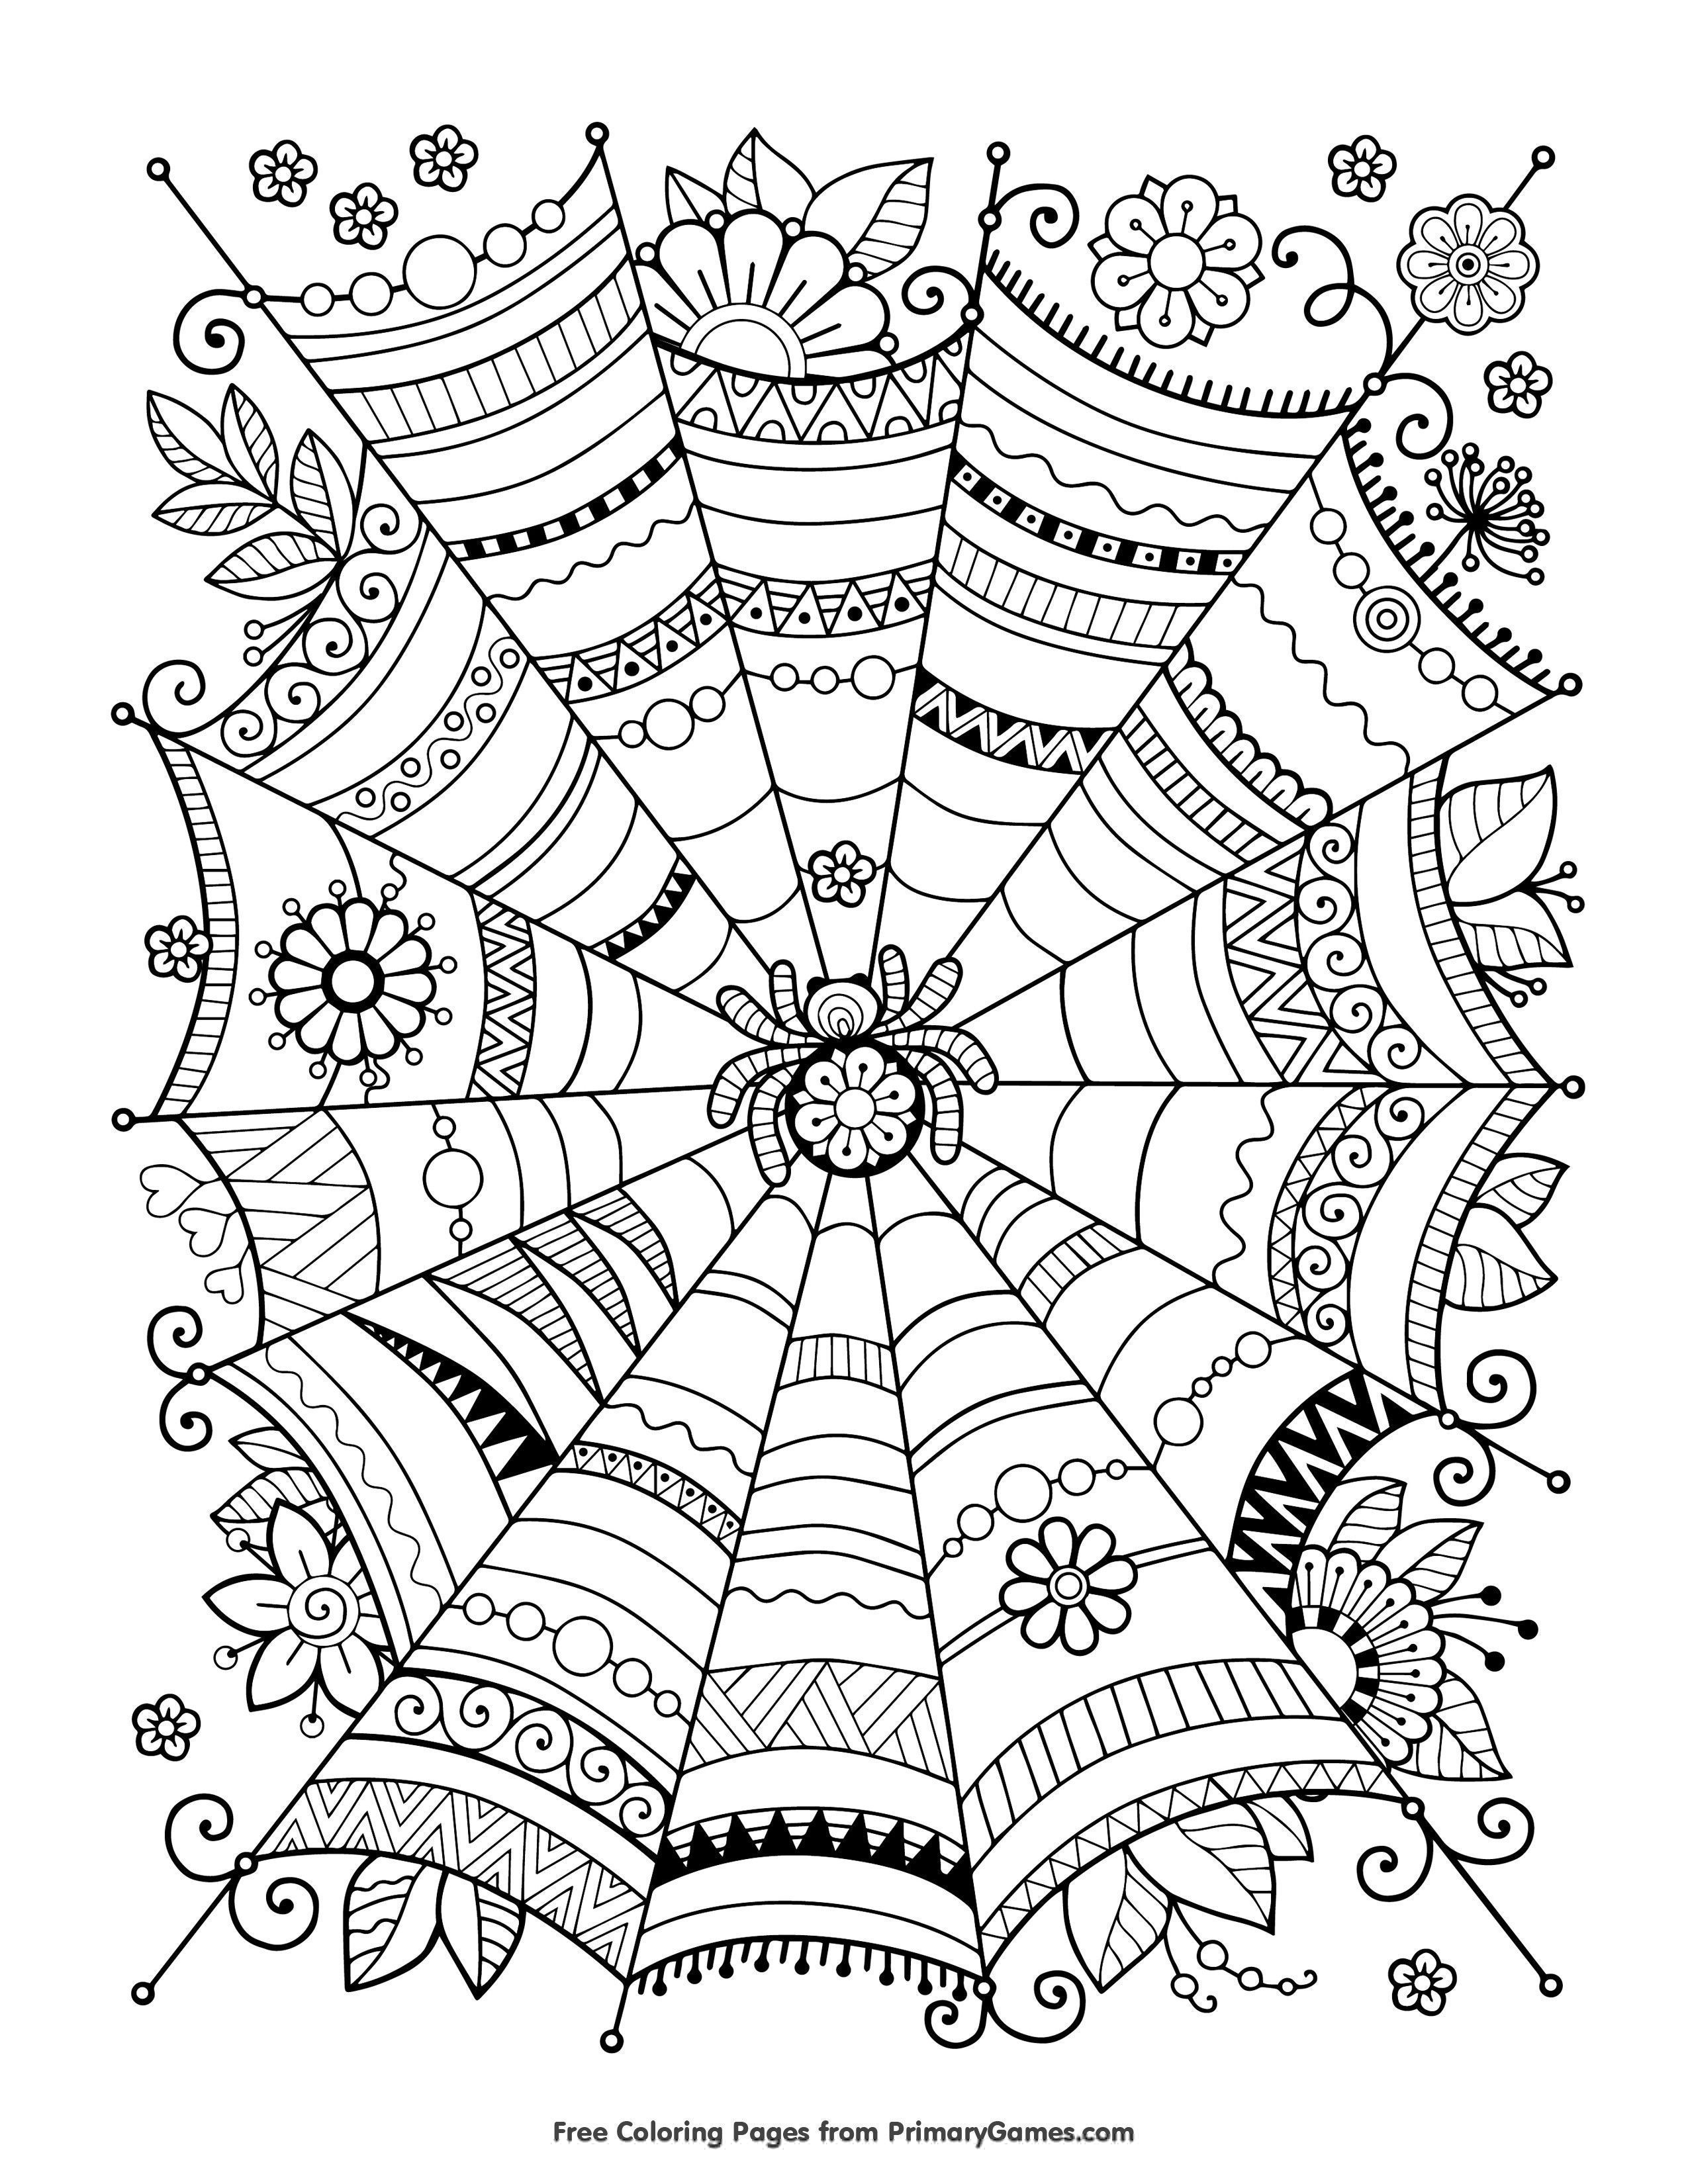 Free Scary Halloween Coloring Pages Lovely Halloween Coloring Pages Printable Scary Jvzooreview